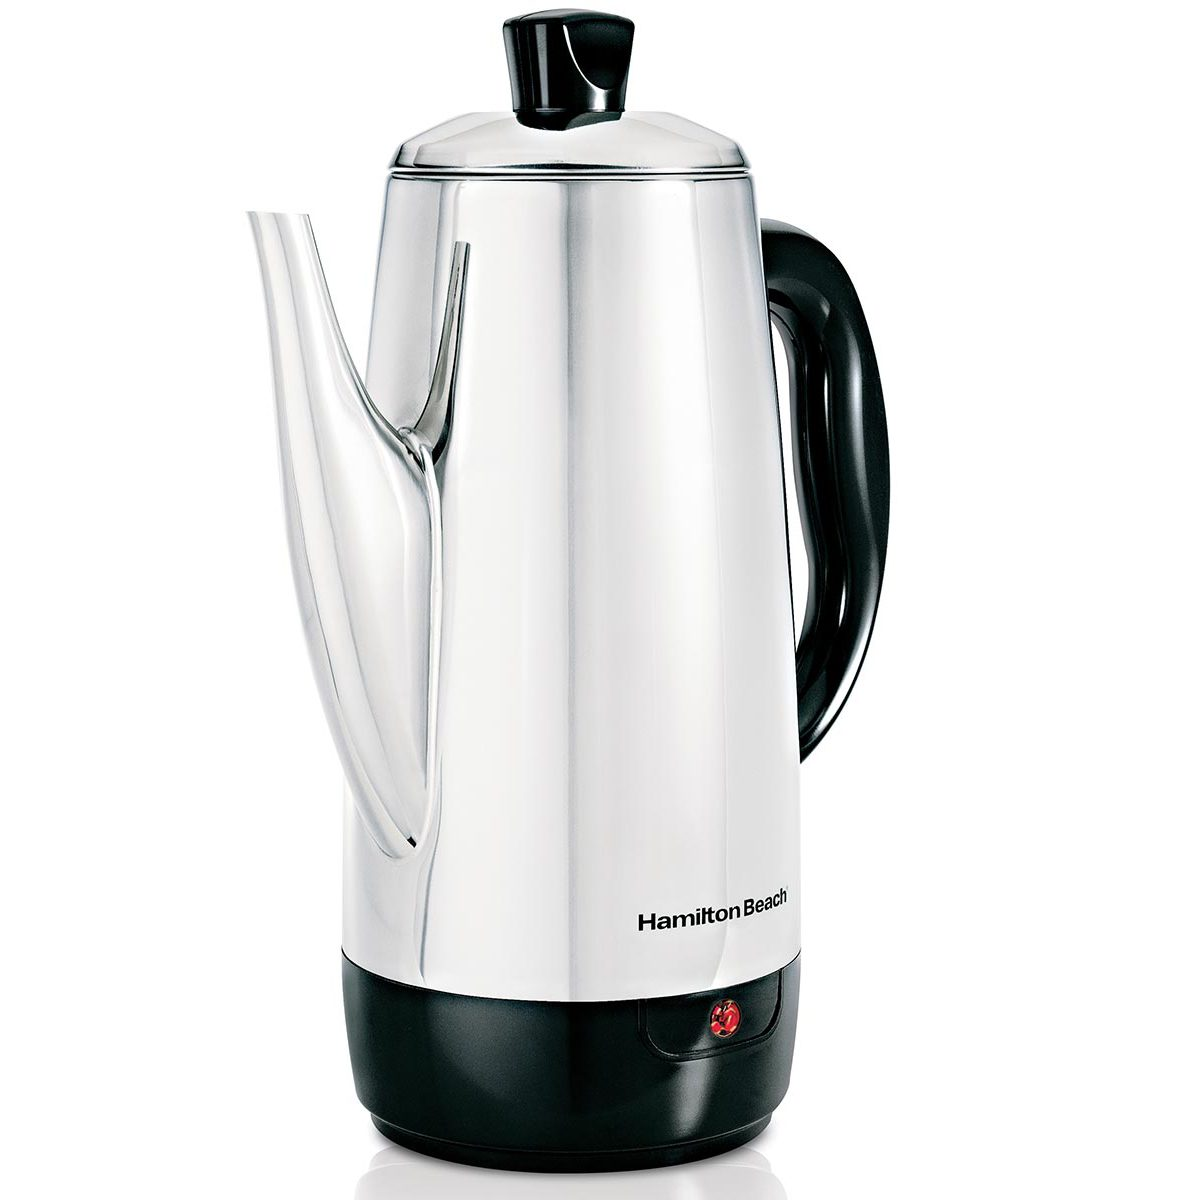 12 Cup Percolator with Cool-Touch Handle, Stainless Steel  (40616)